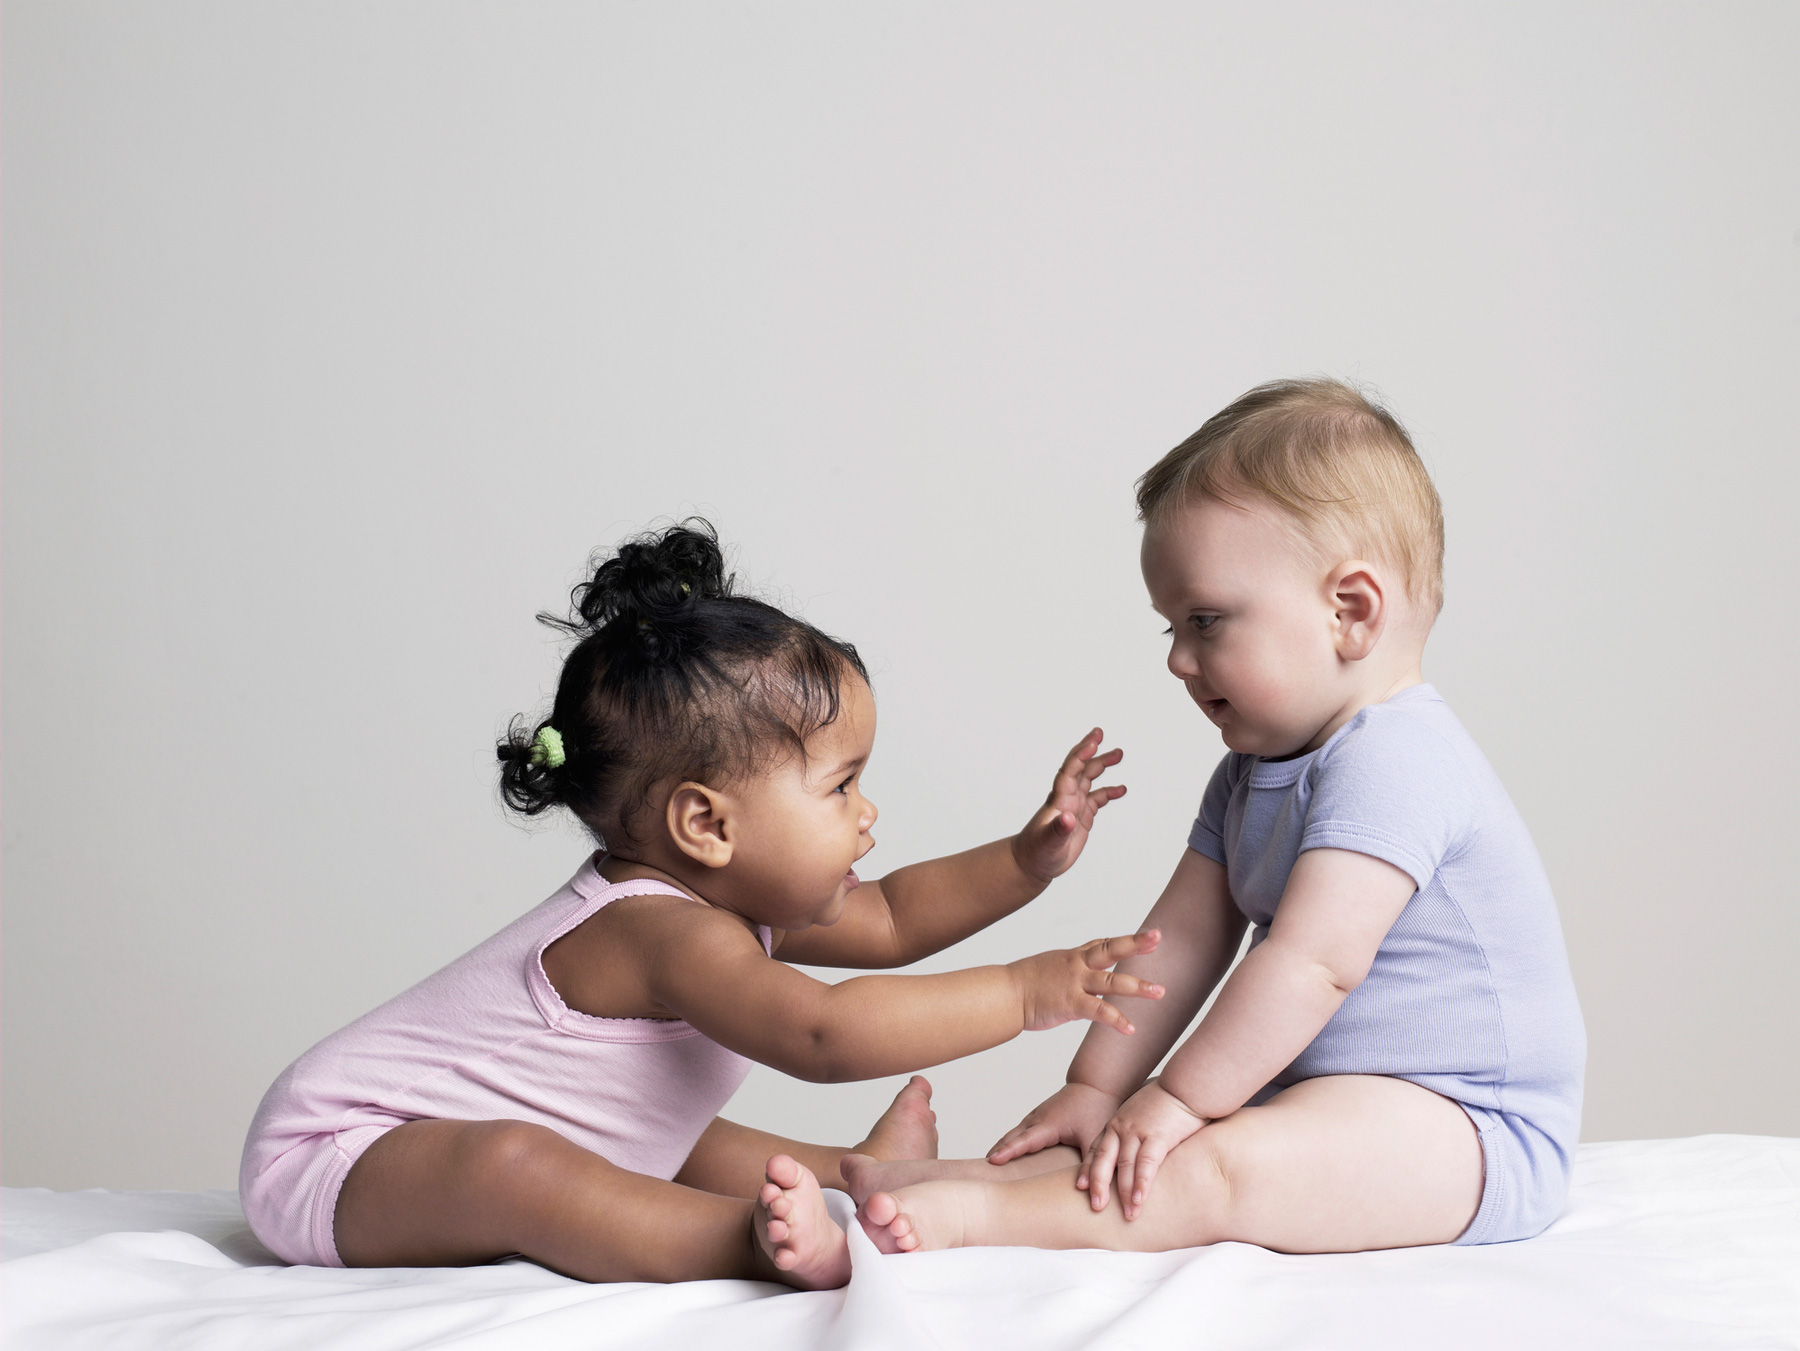 Baby girl and boy playing